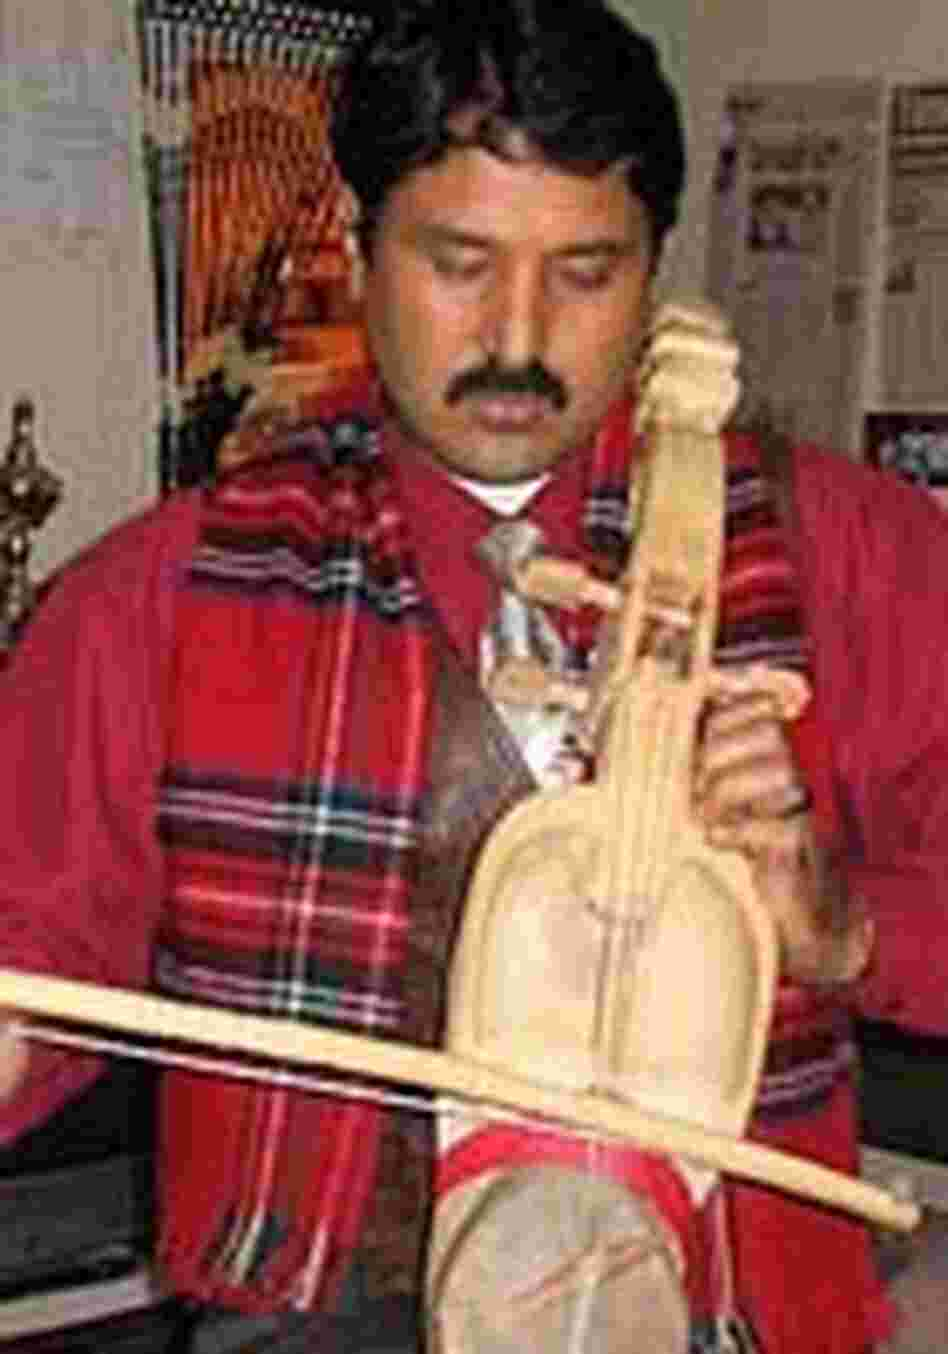 Prem Raja Mahat playing the sarangi